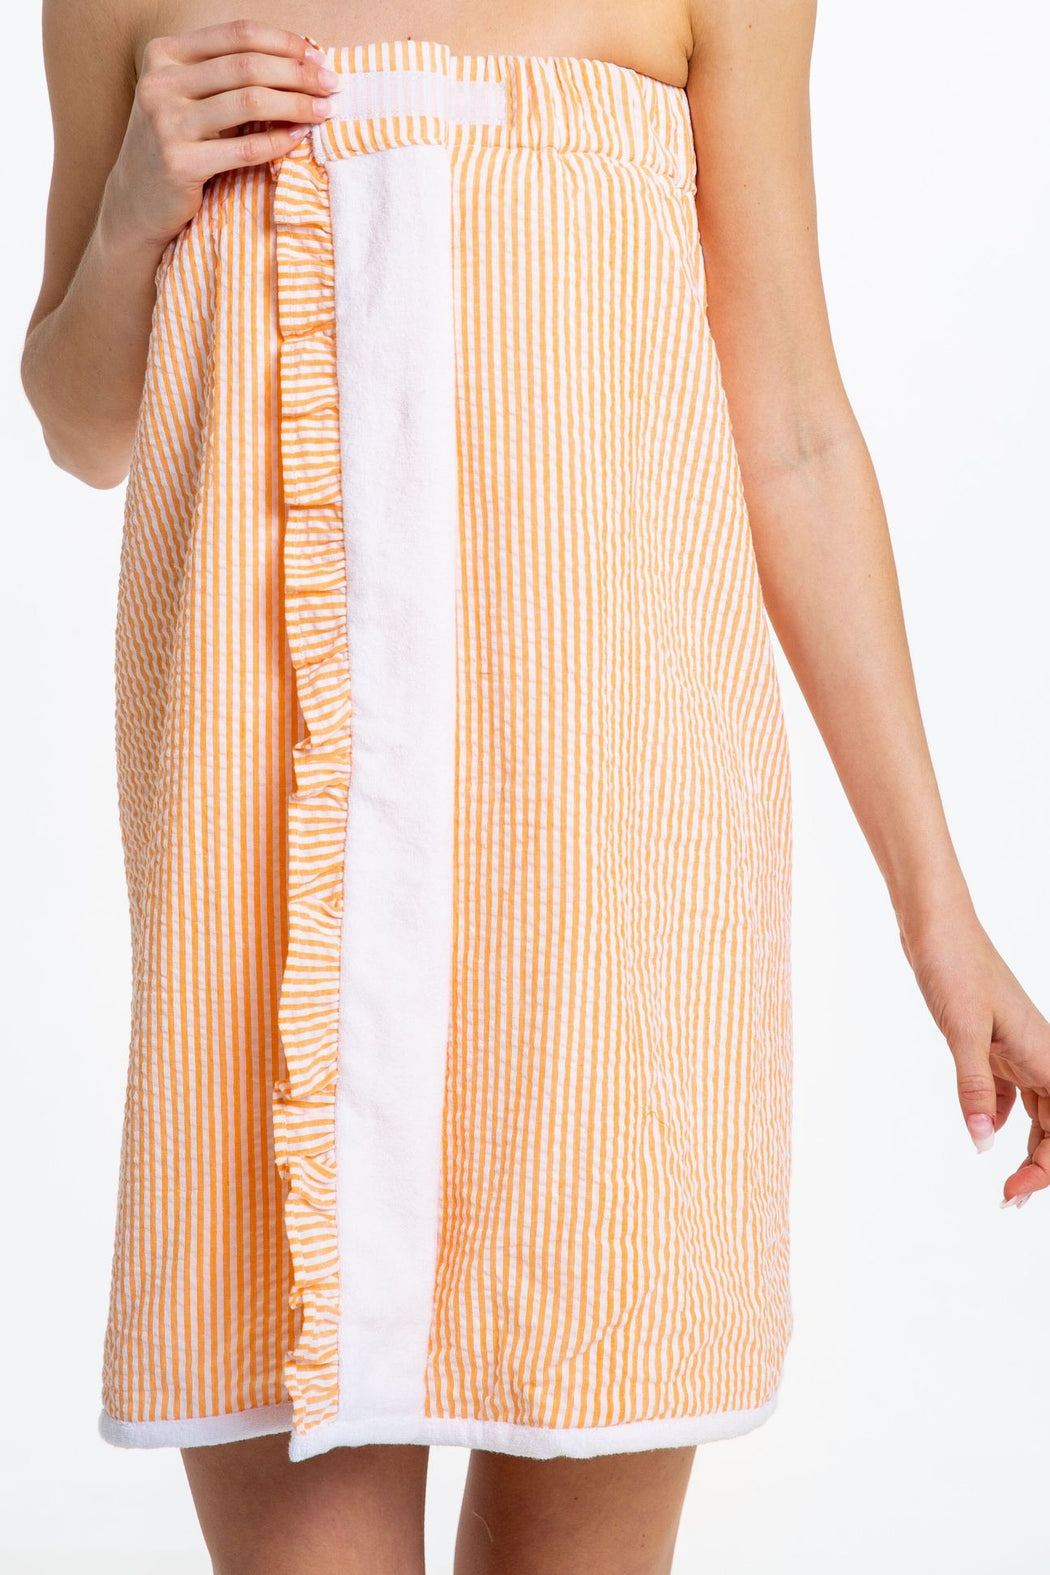 Seersucker Spa Wrap Orange - Monogrammed